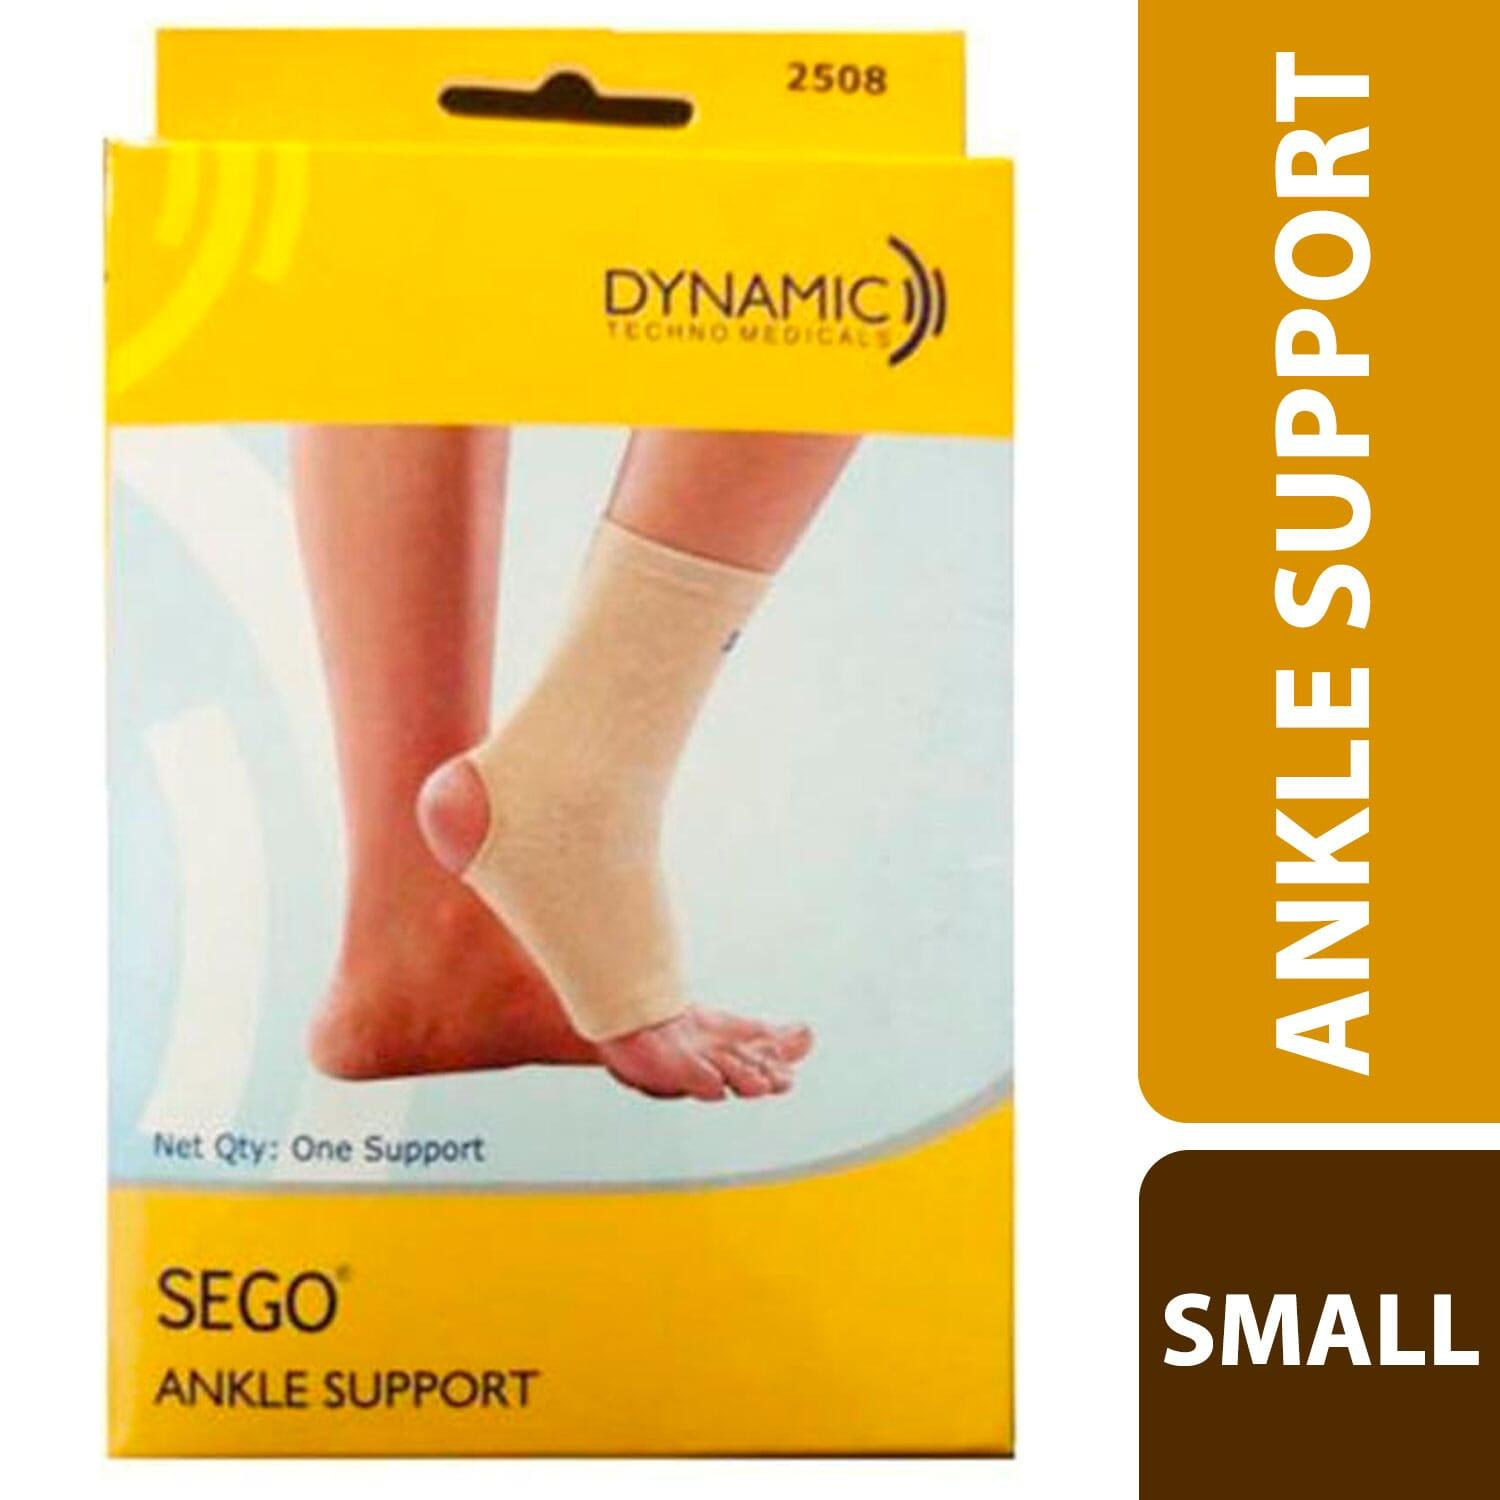 Sego-Ankle Support - SMALL